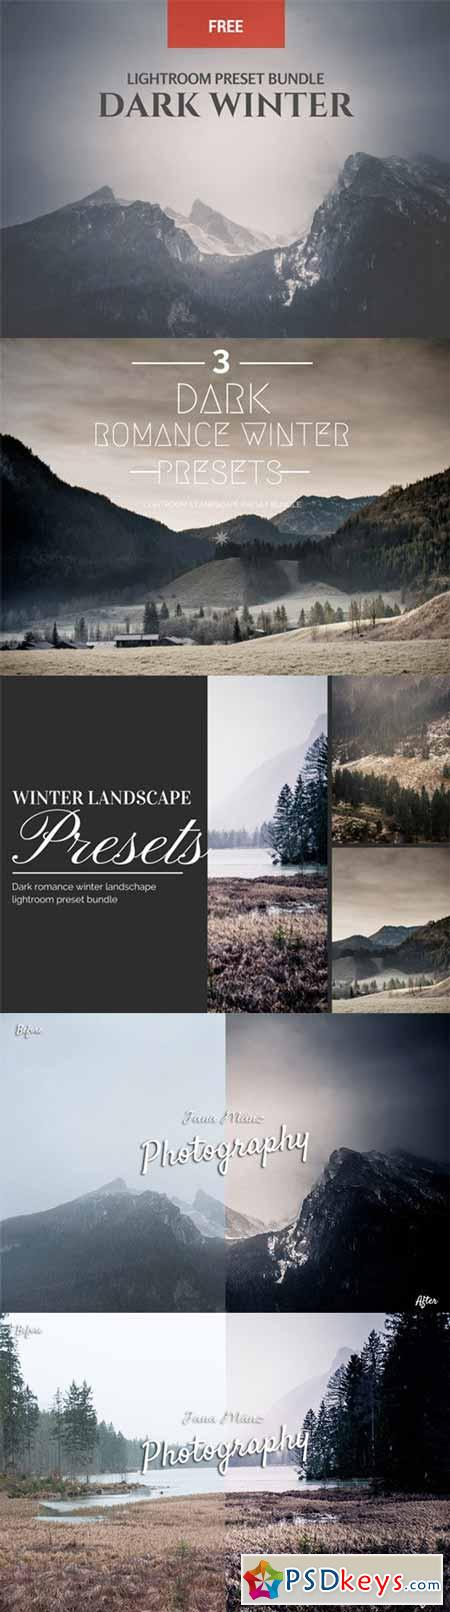 Dark Winter 3 LR Preset Bundle 178740